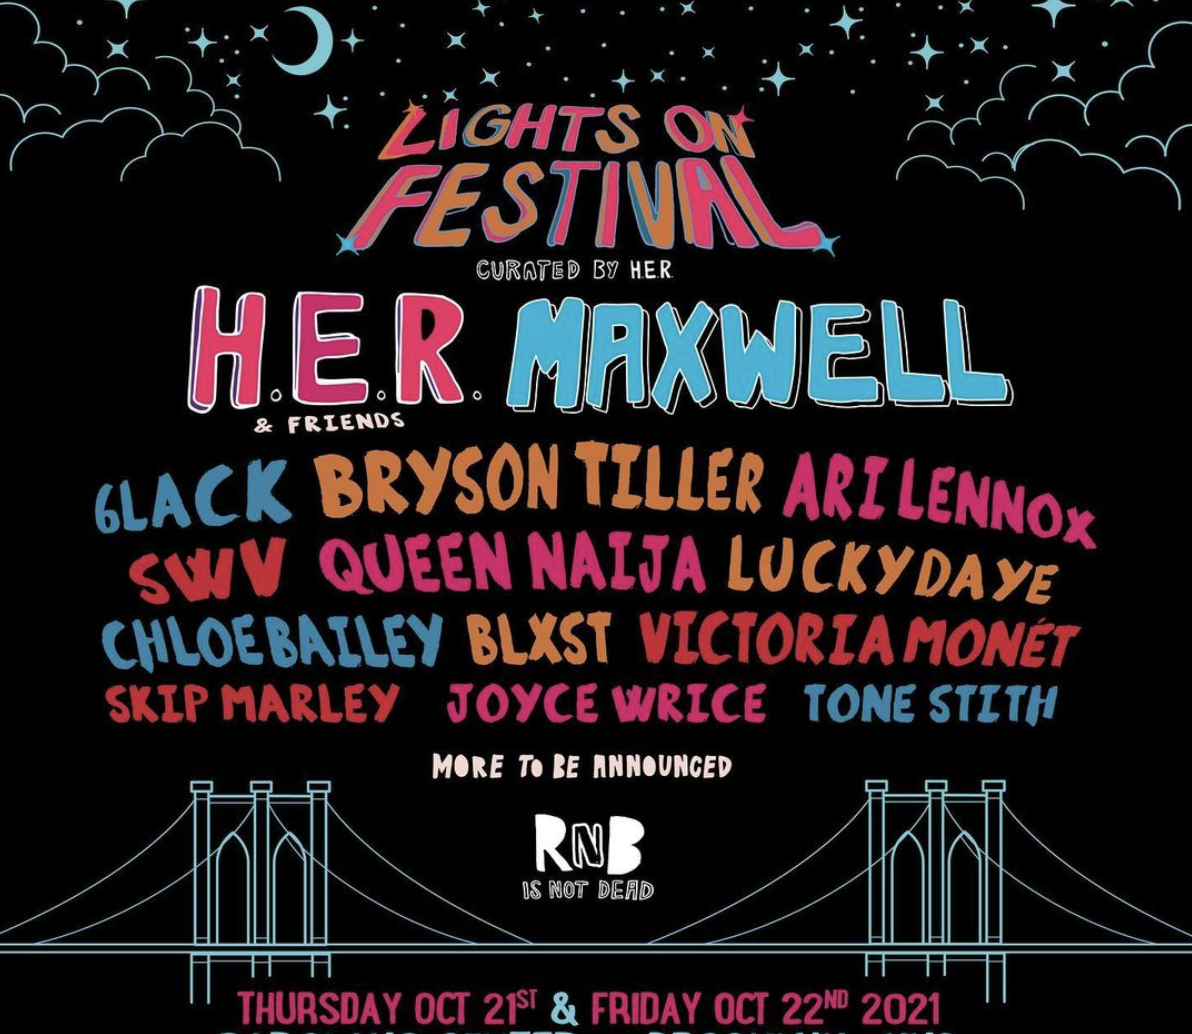 The Source |  HER Announces Lights On Festival Coming to Brooklyn